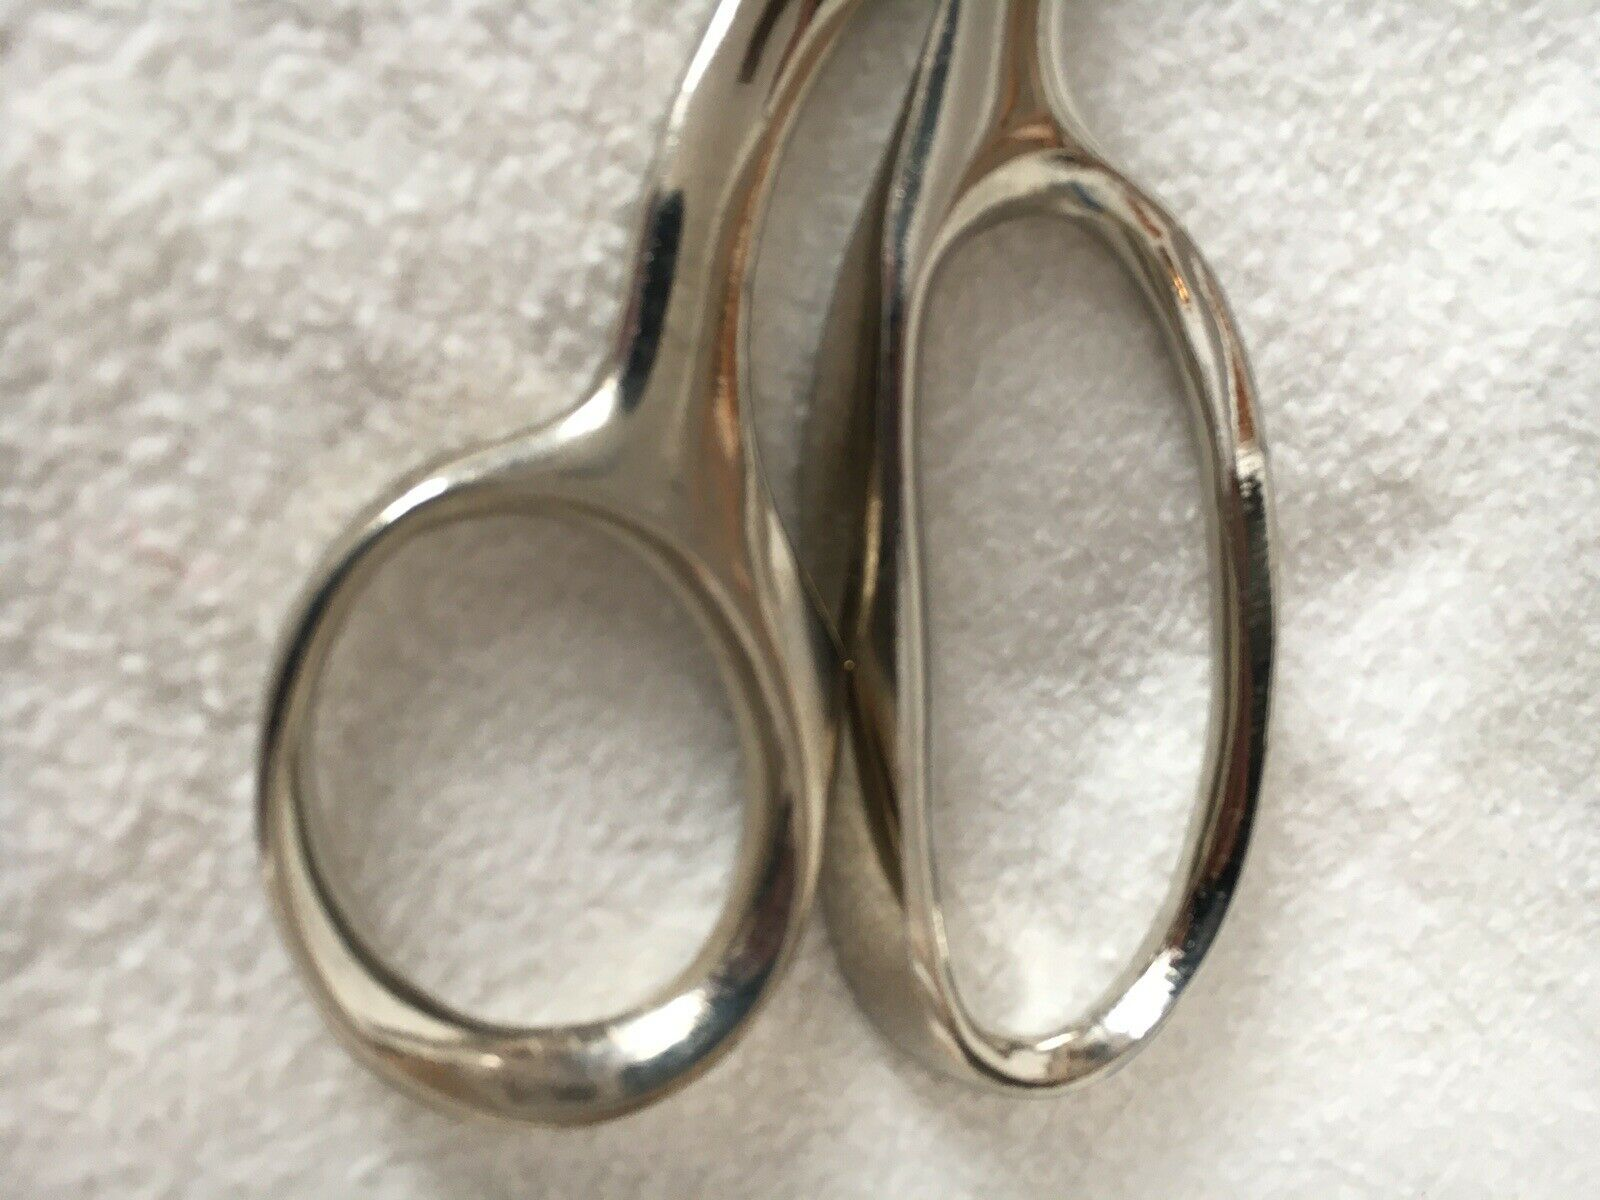 Dovo Tailor Shears 9 Nickel Plated w Black Leather Sheath Free US Shipping!!!